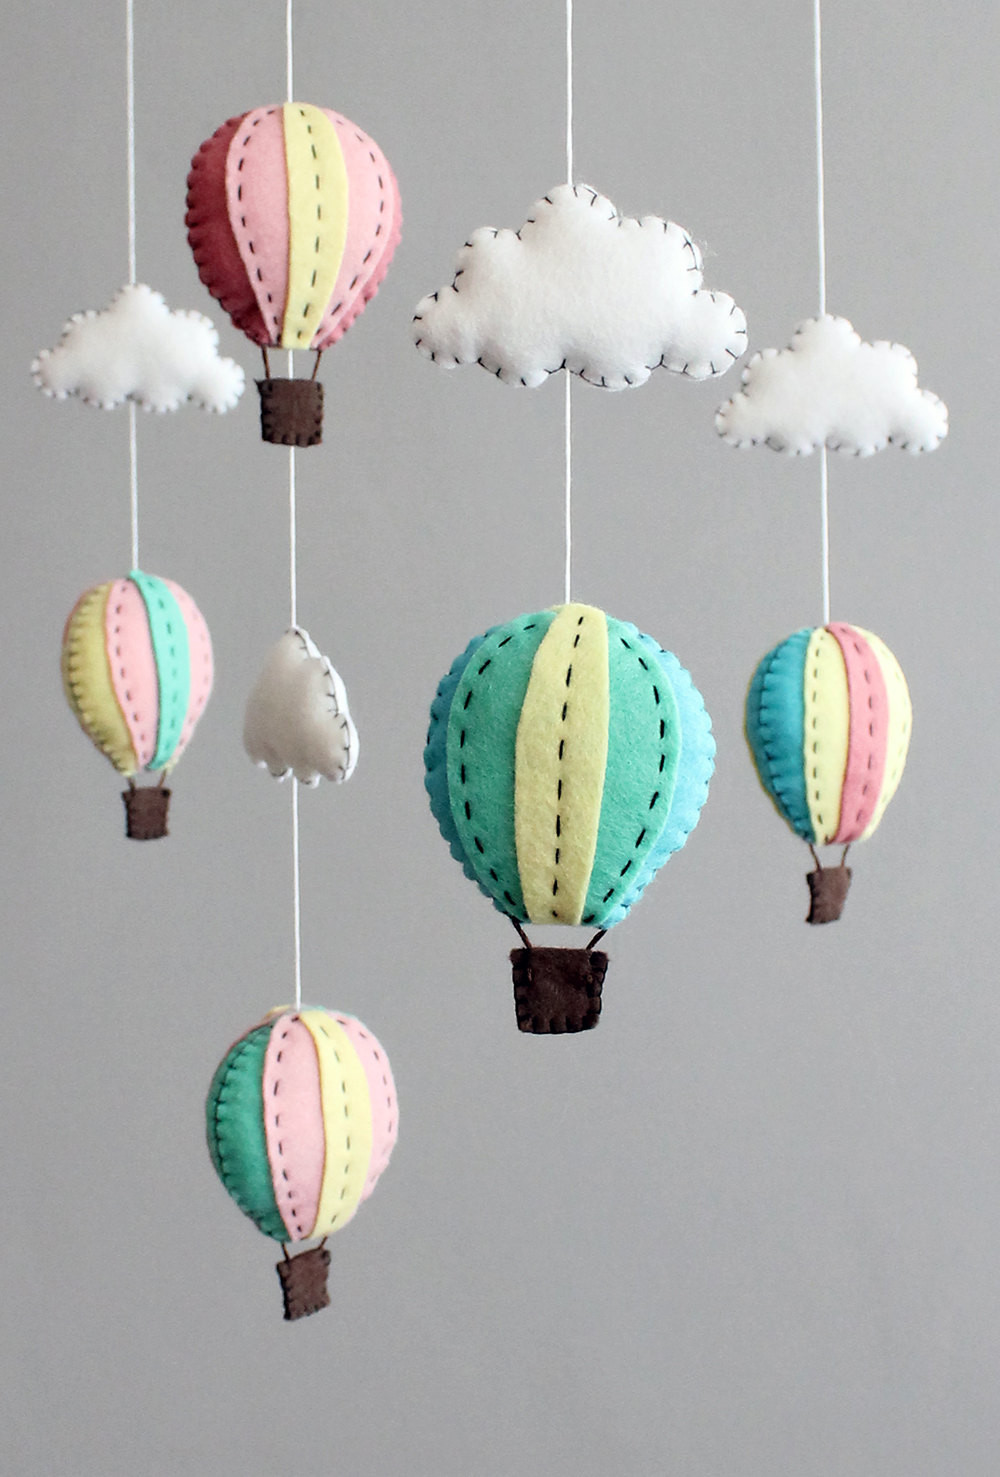 Best ideas about DIY Crib Mobiles . Save or Pin diy baby mobile kit make your own hot air balloon by Now.